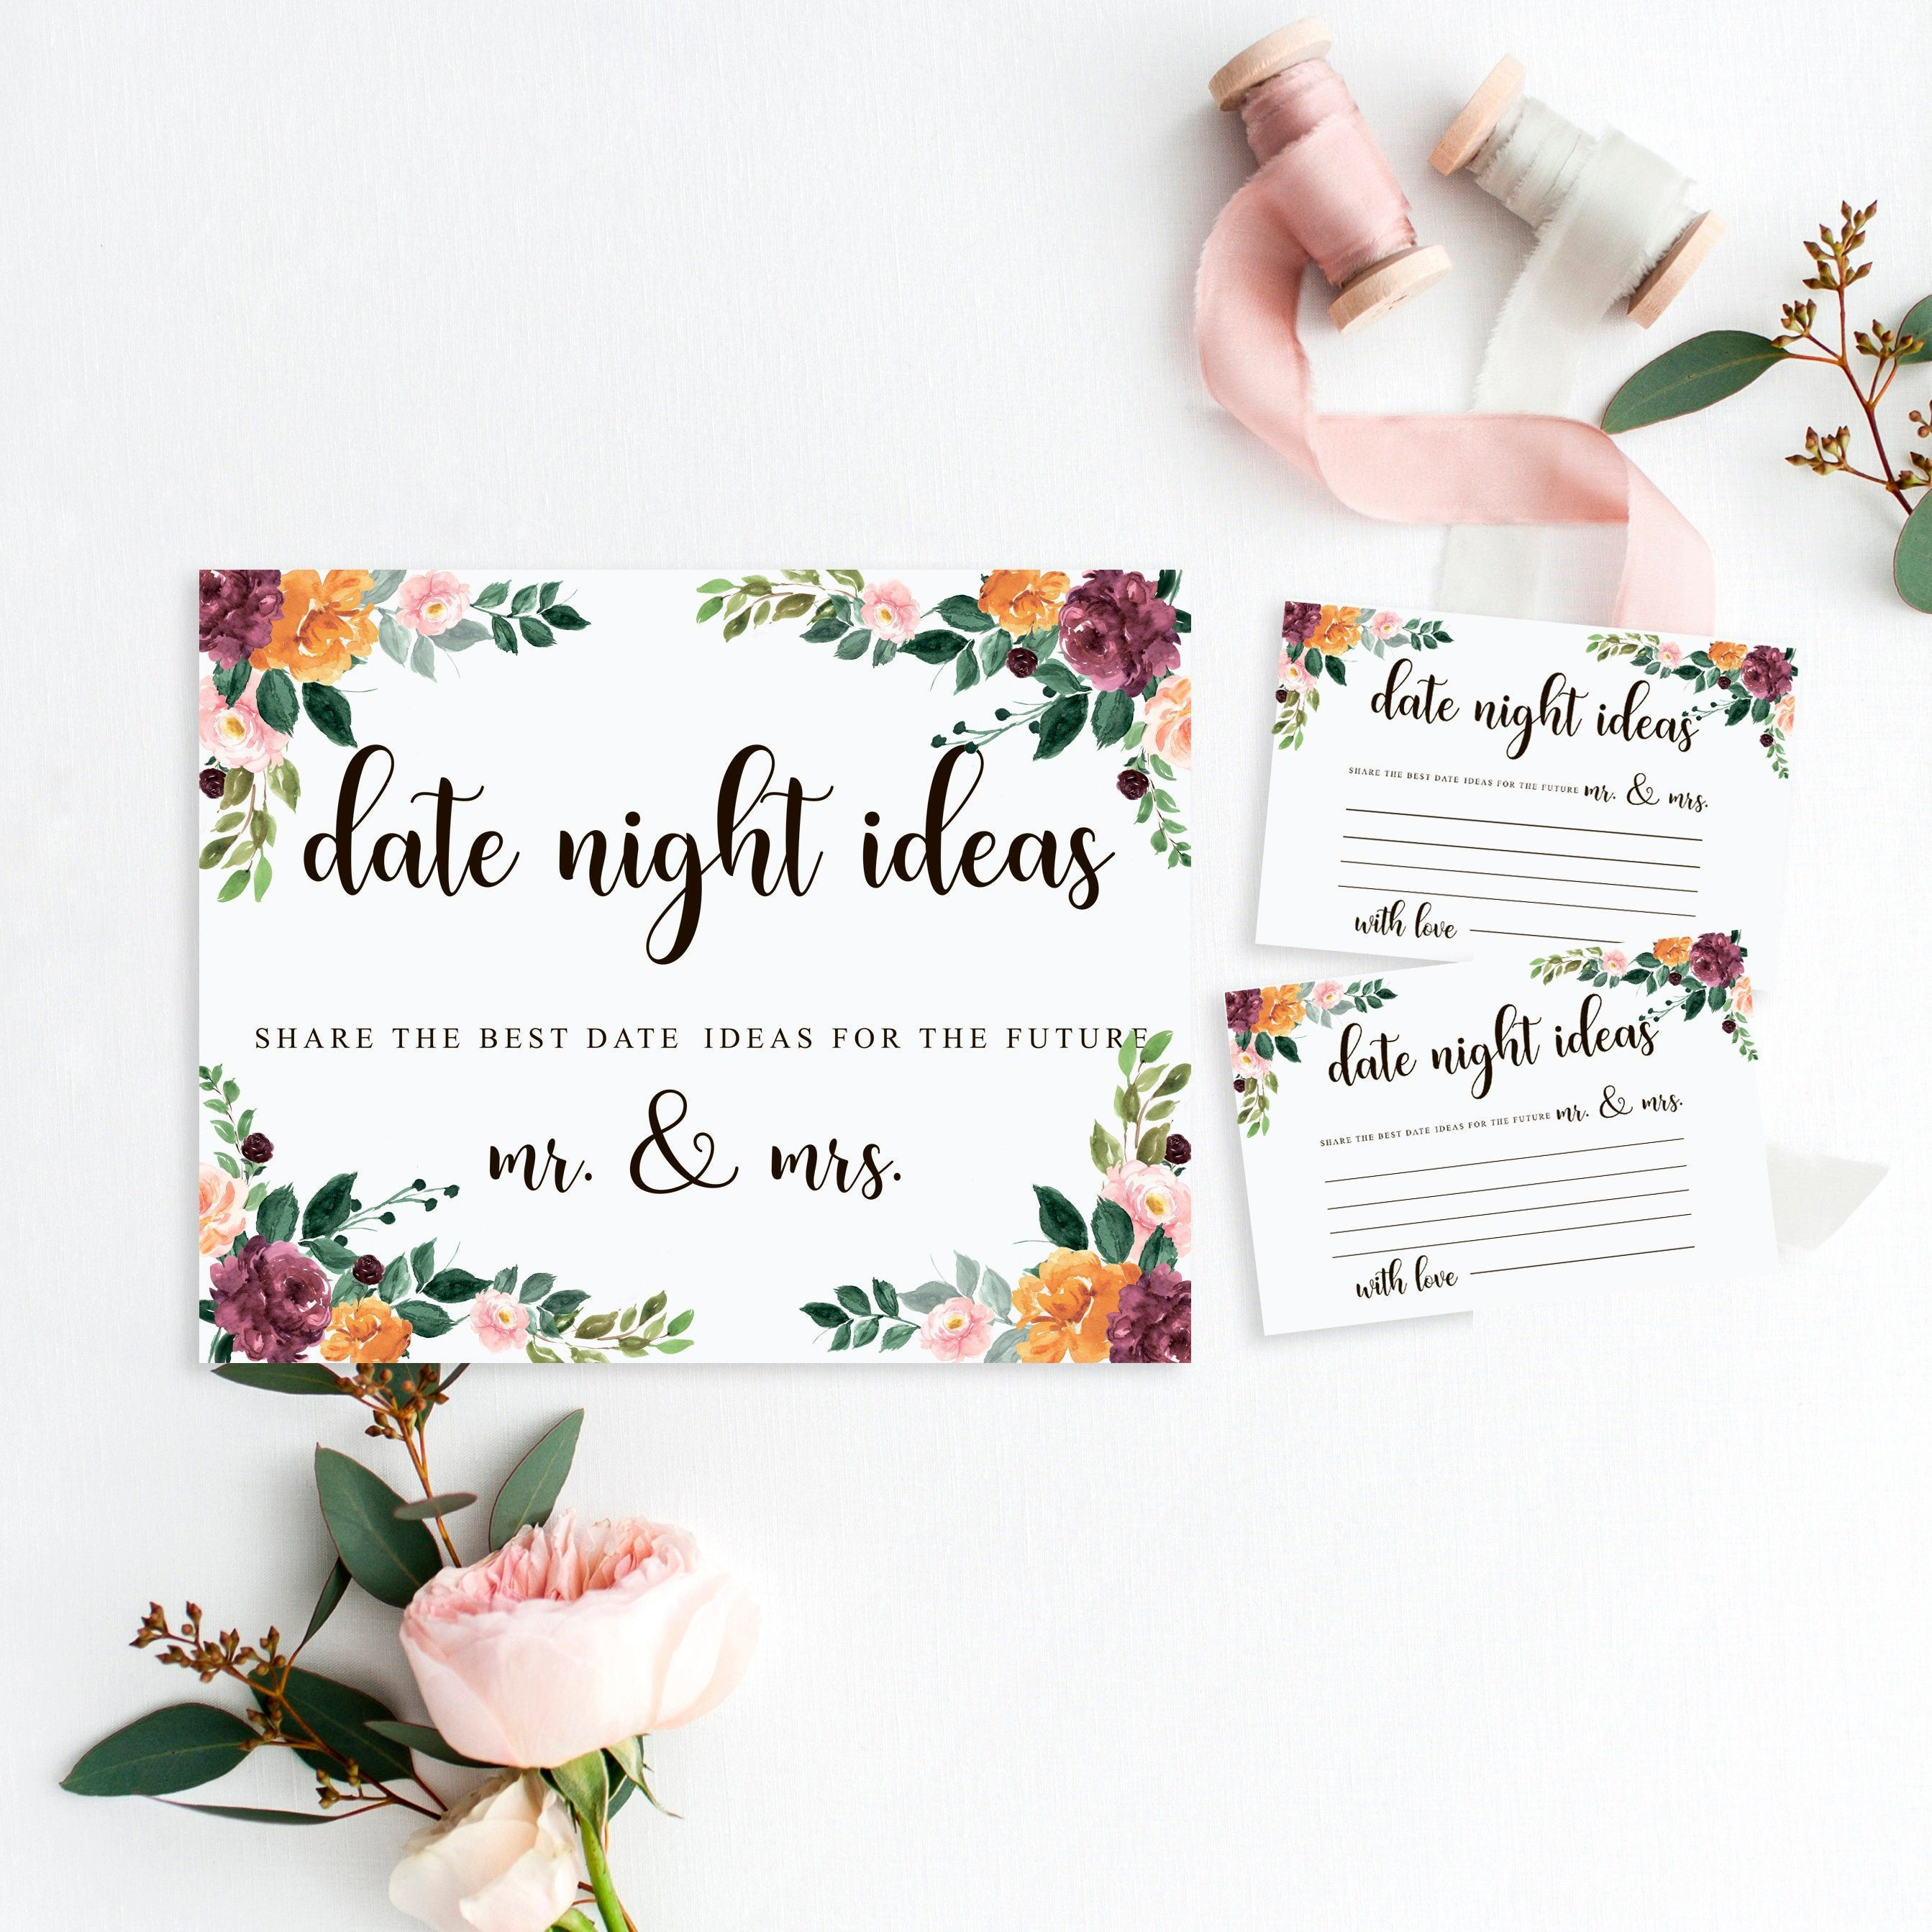 Date Night Ideas Cards For Wedding Shower Or Anniversary Party Date Night Date Nights Cards Date Bridal Shower Activities Wedding Shower Bridal Shower Games